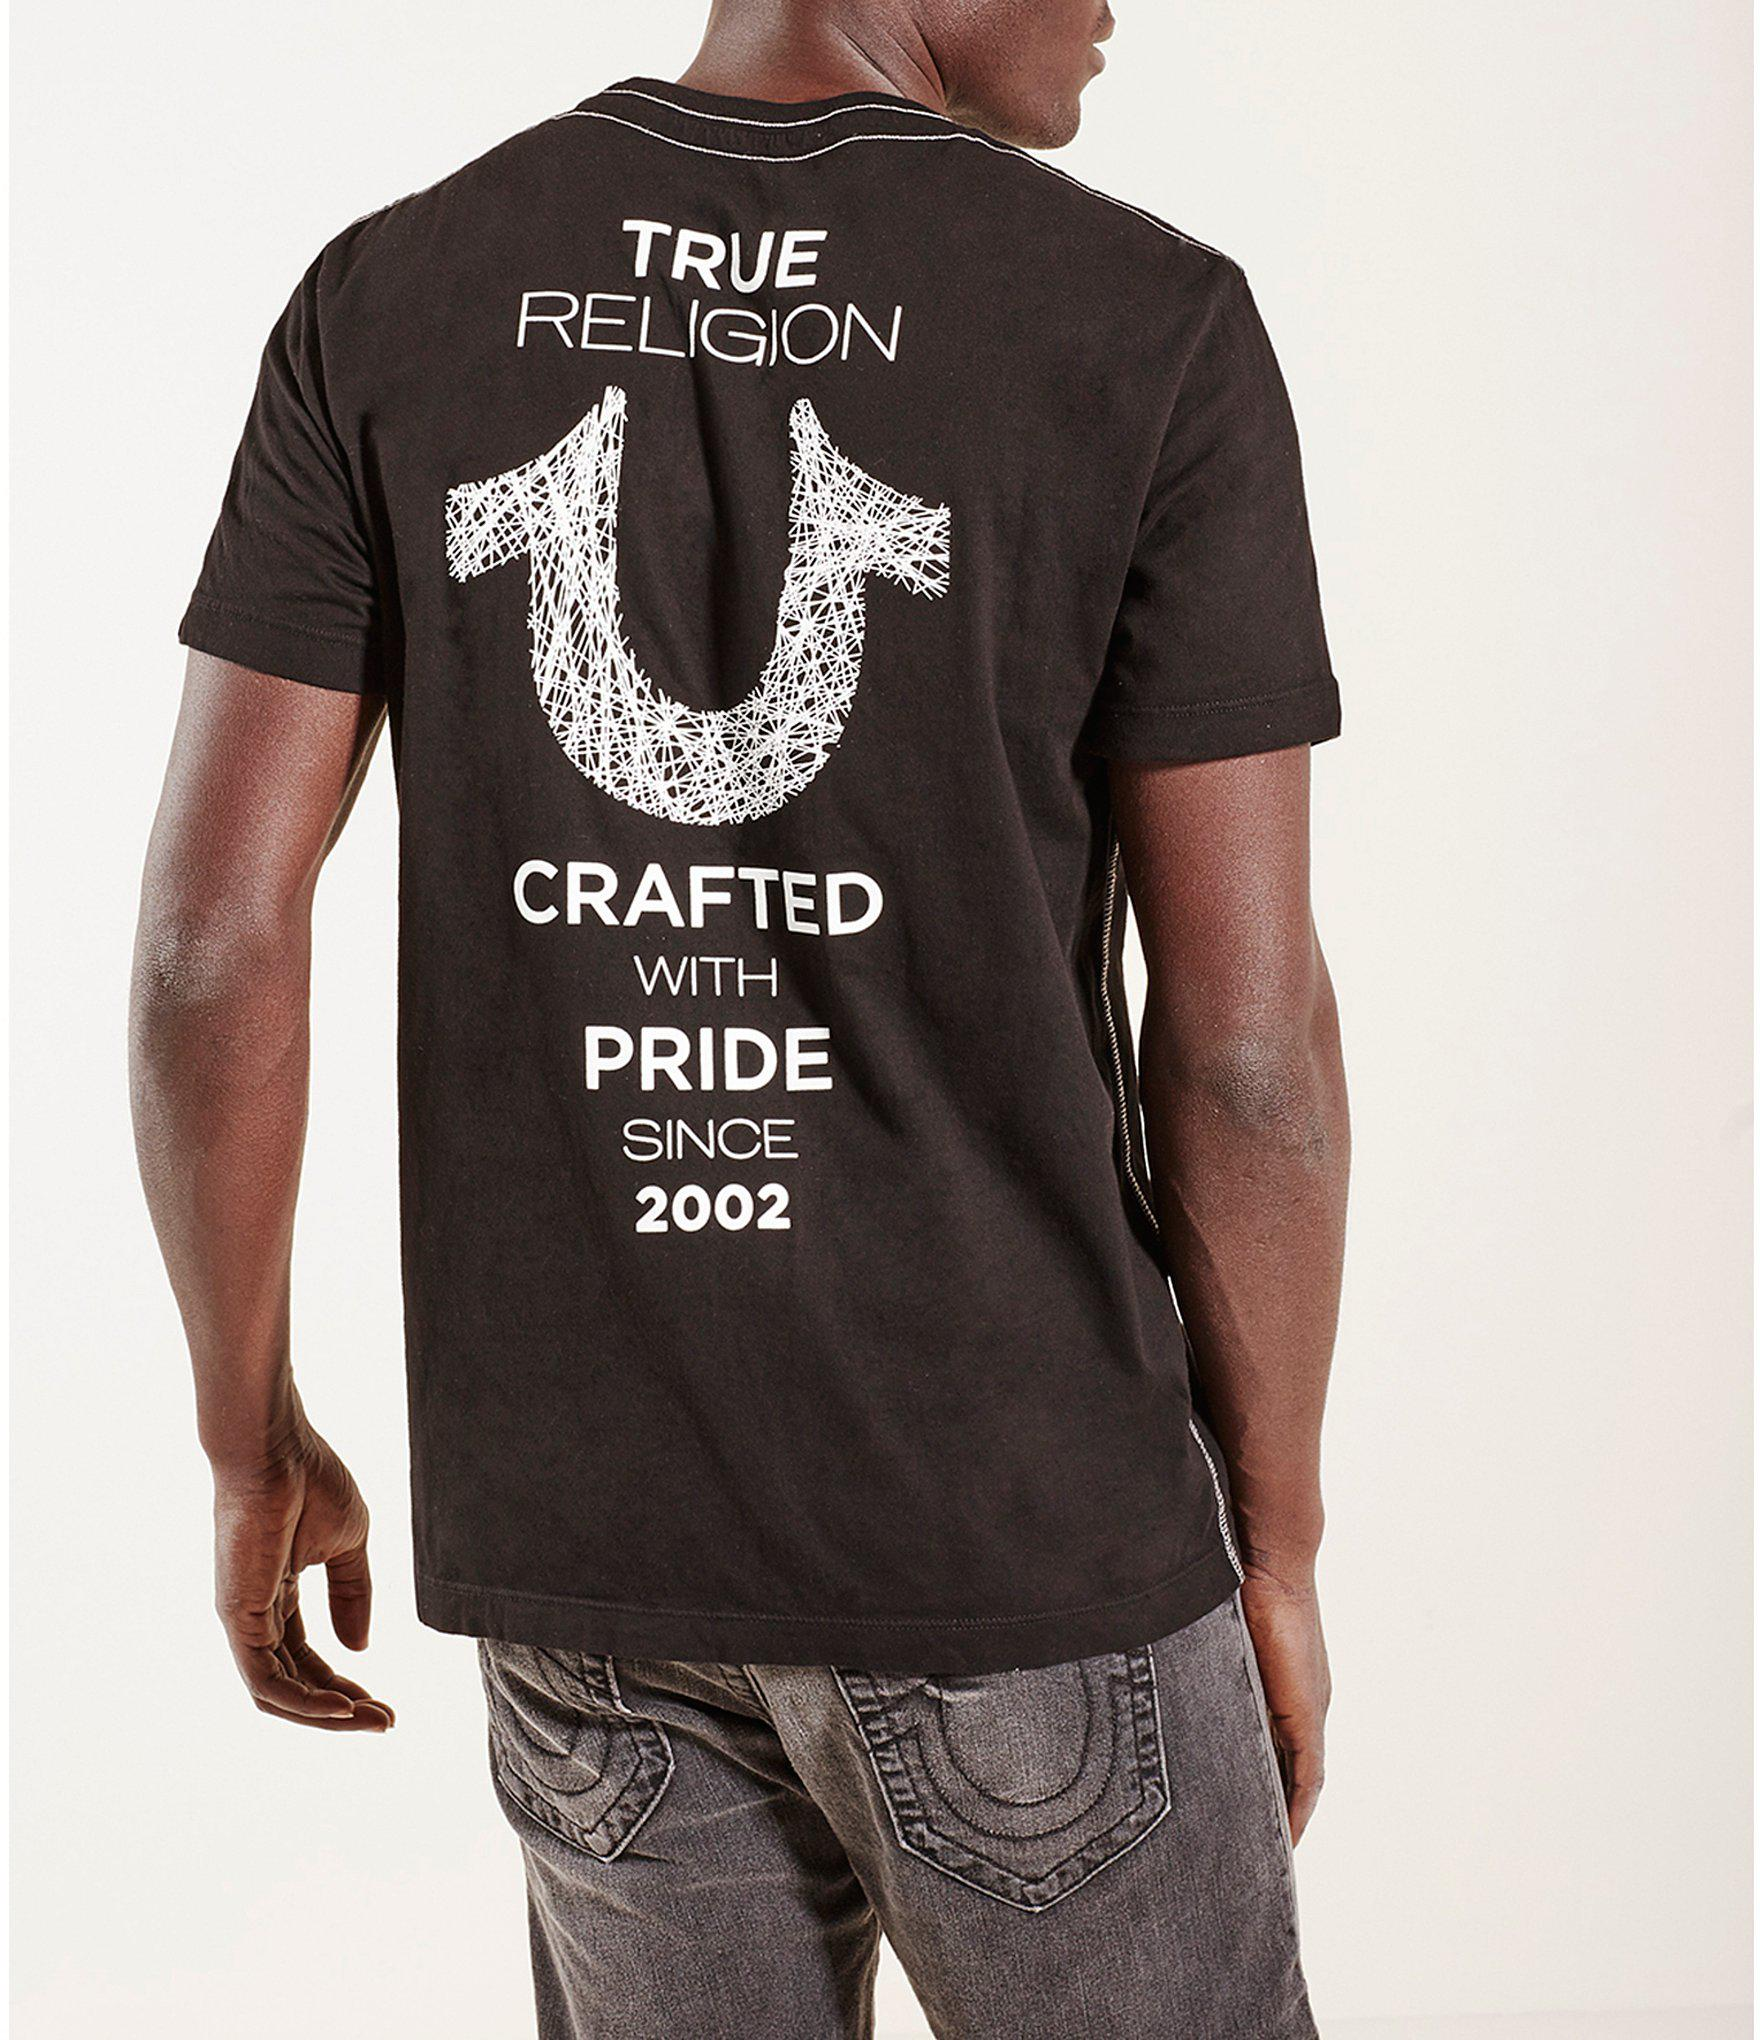 5078d3b9 True Religion Crafted With Pride Short-sleeve Crewneck Graphic Tee ...